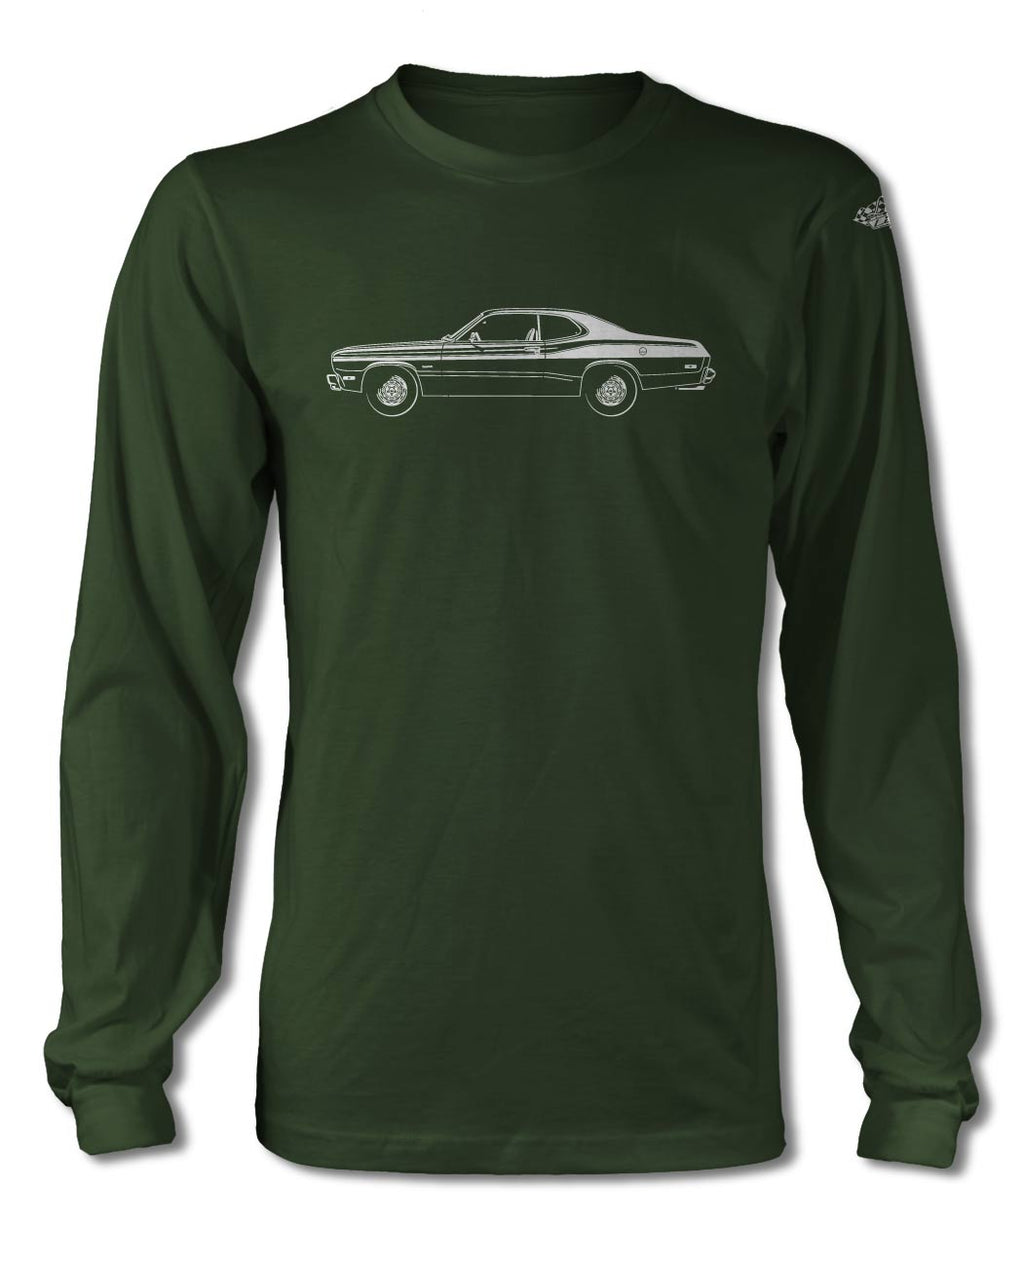 1974 Plymouth Duster Coupe T-Shirt - Long Sleeves - Side View